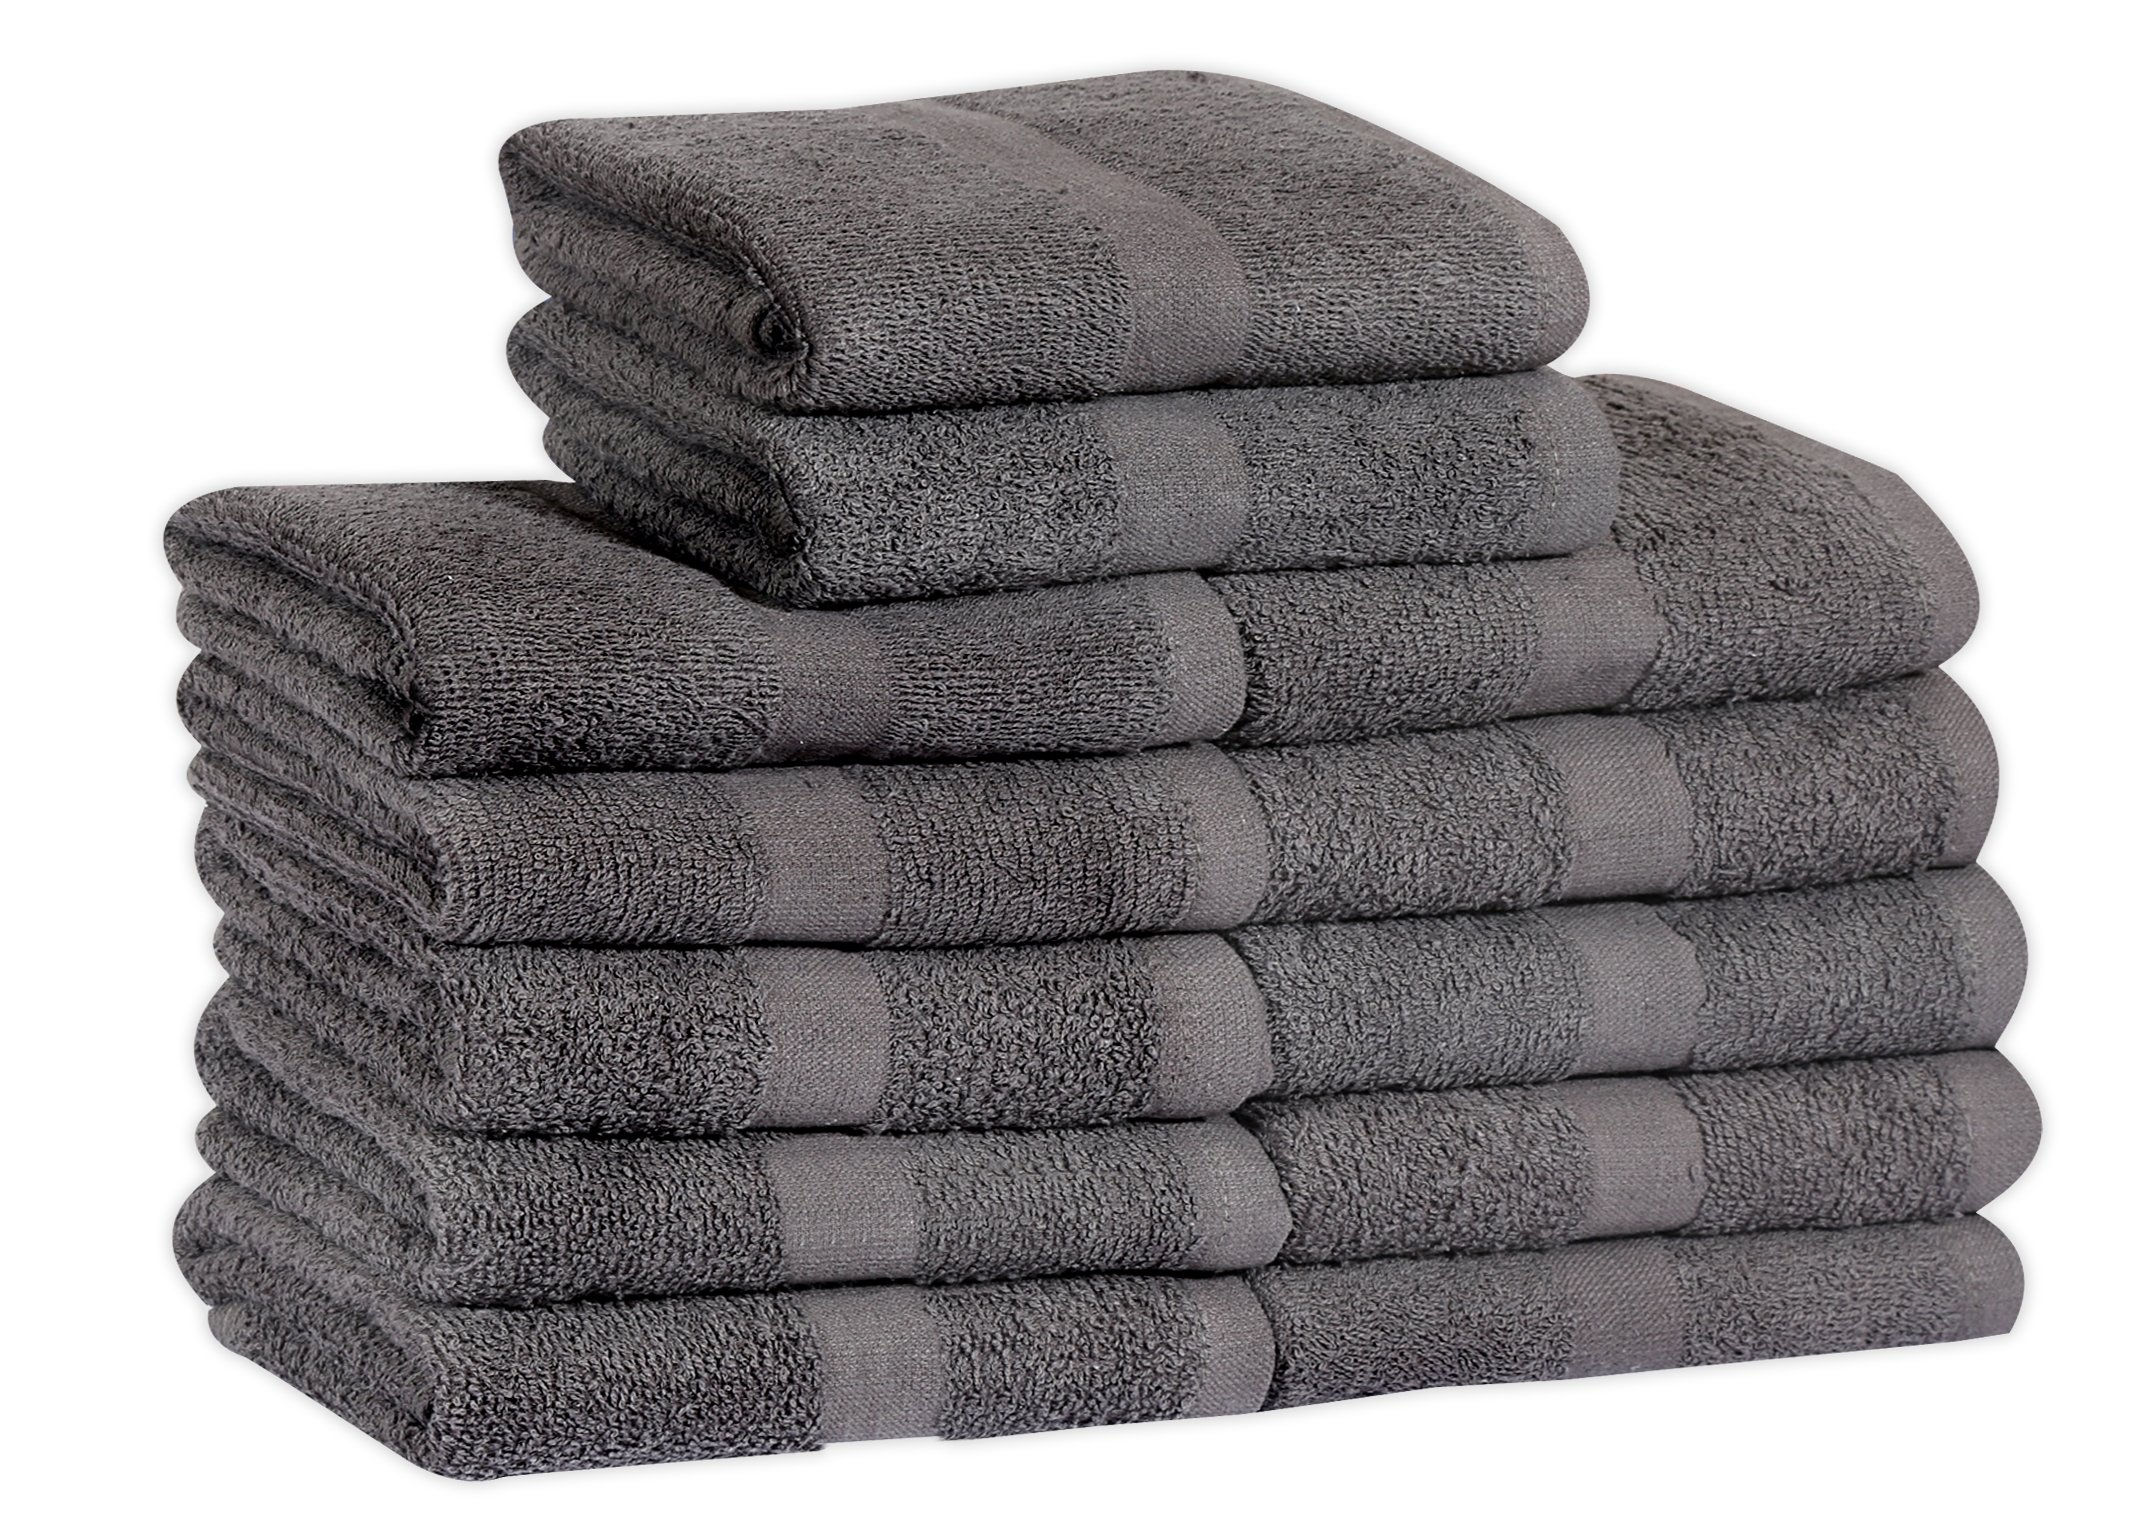 Cotton Salon Towels (24-Pack,Dark Grey,16x27 inches) - Soft Absorbent Quick Dry Gym-Salon-Spa Hand Towel (Gray) (100%